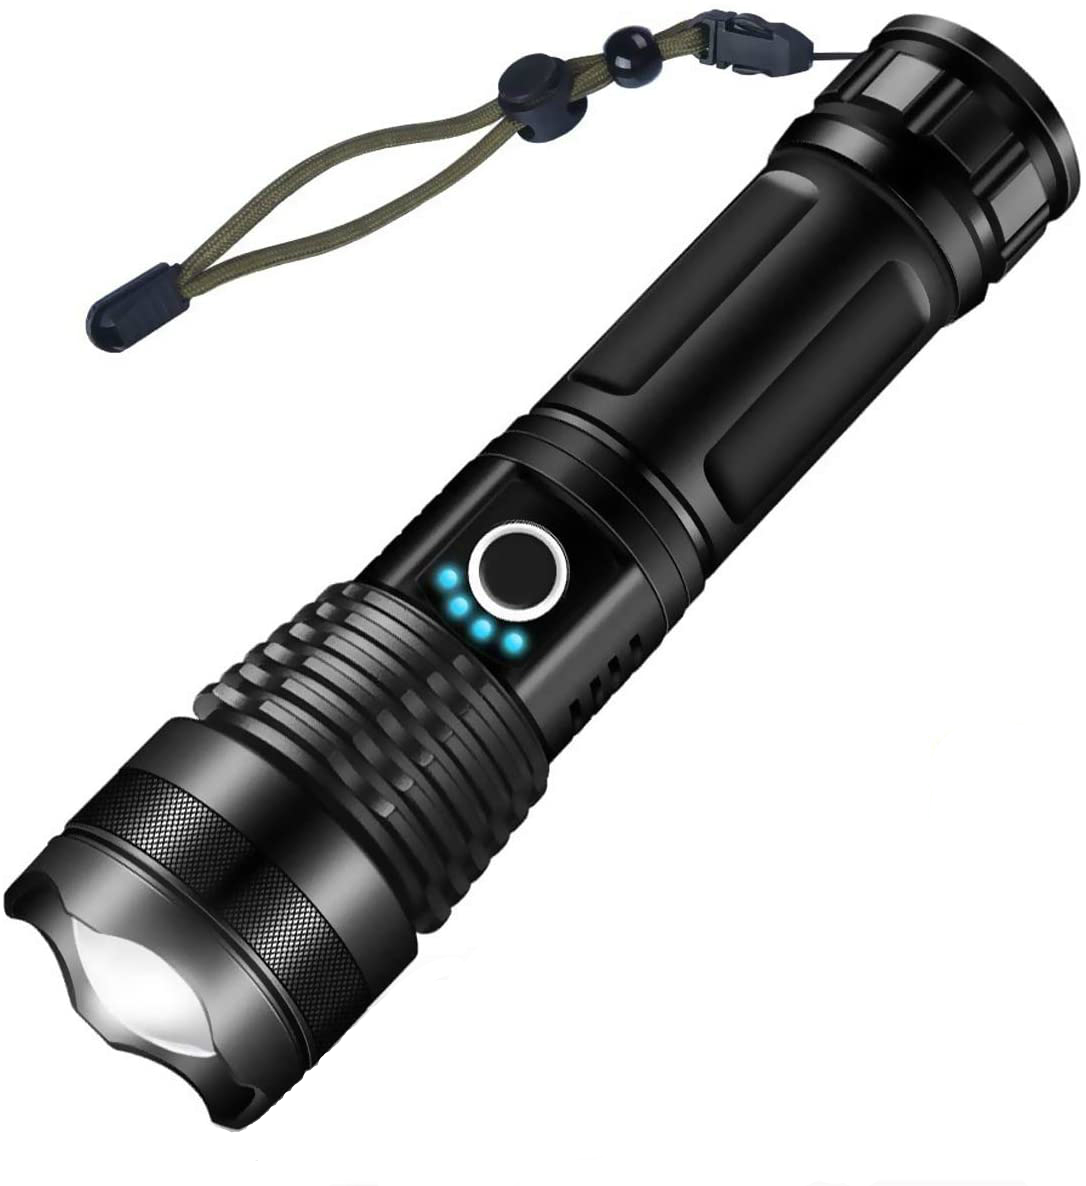 LED Zoom Adjustable Rechargeable USB Flashlight Torch 5 Mode Waterproof Torch